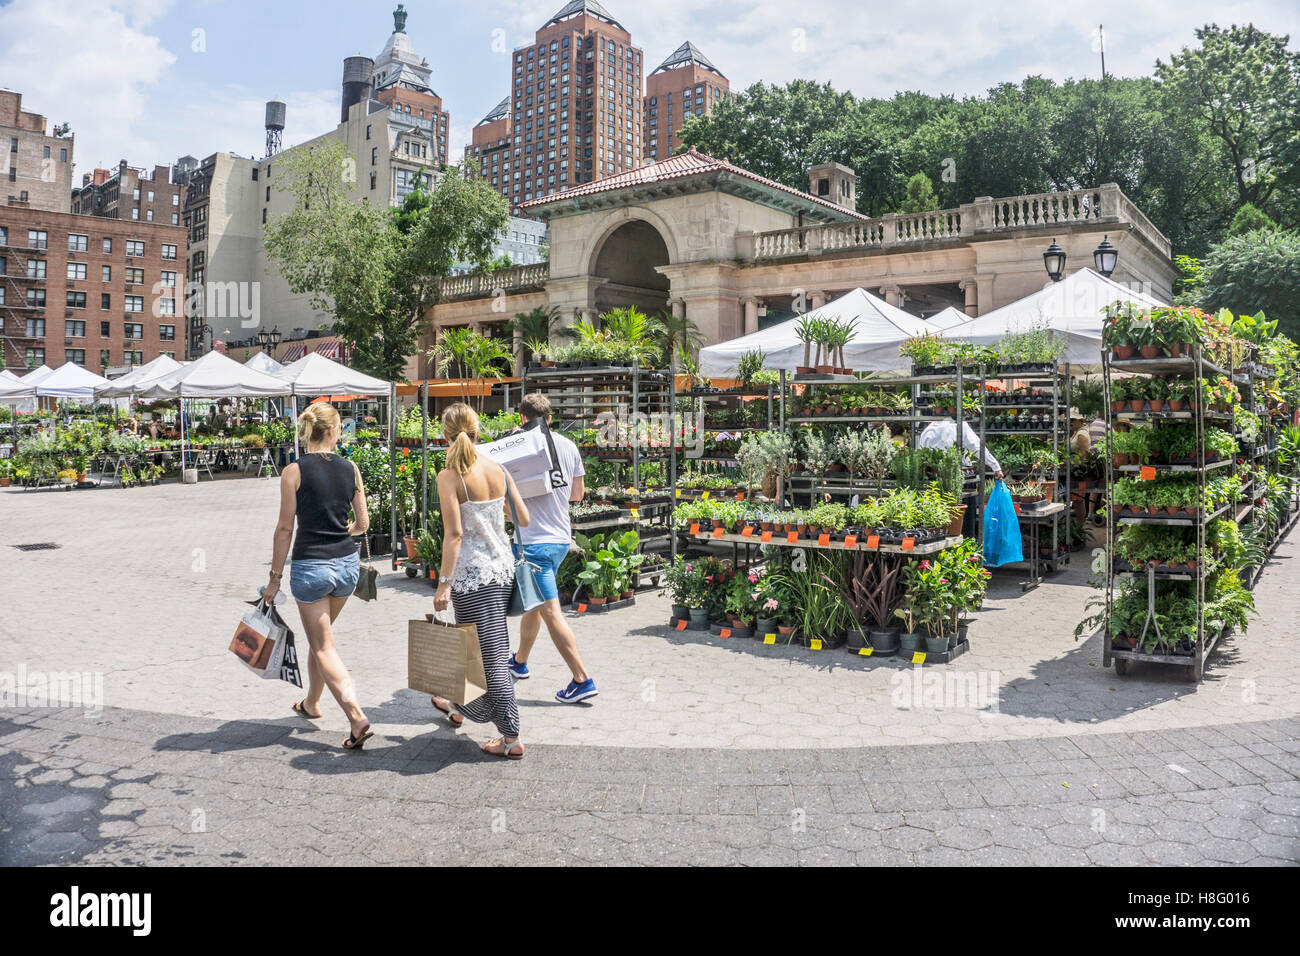 3 twenty somethings are diverted by gardening area of Union Square greenmarket providing plants for city terraces - Stock Image